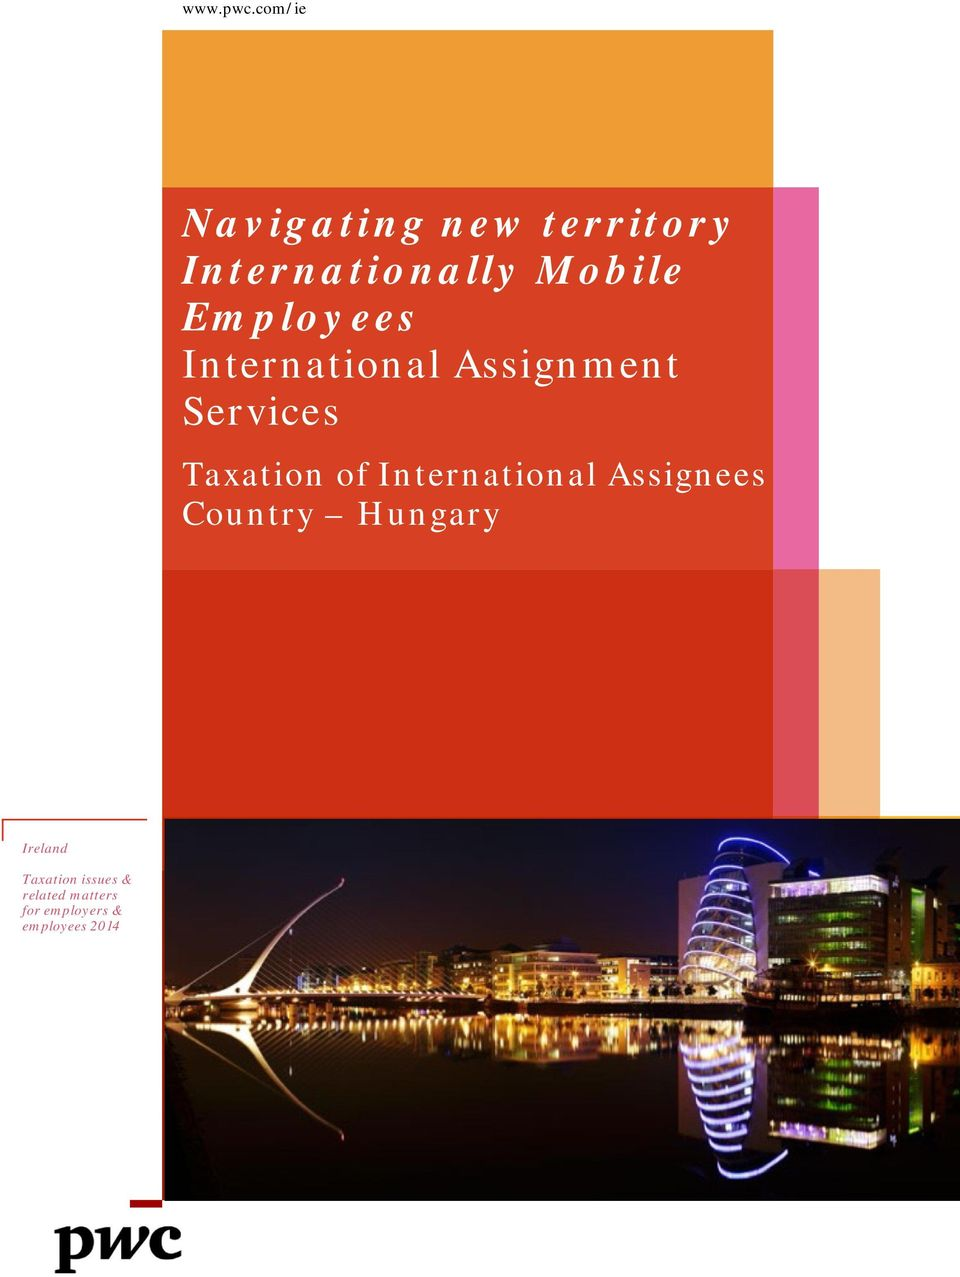 Employees International Assignment Services Taxation of